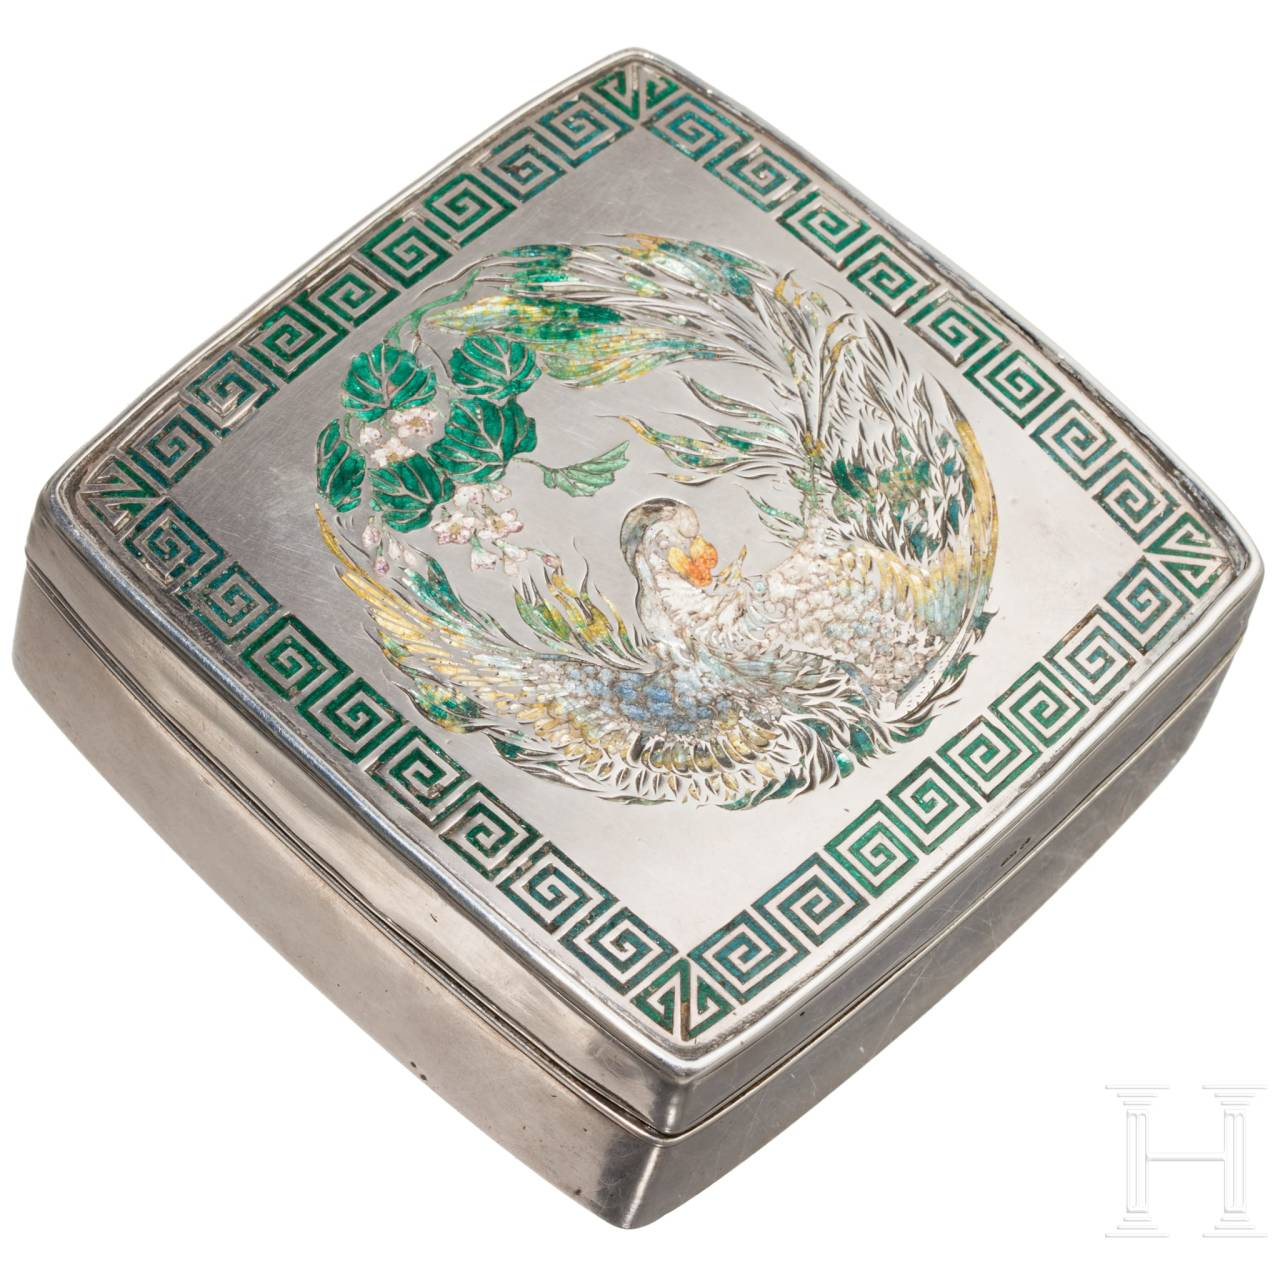 Prof. Francis Elgar – a silver presentation box by the Japanese Emperor, circa 1880